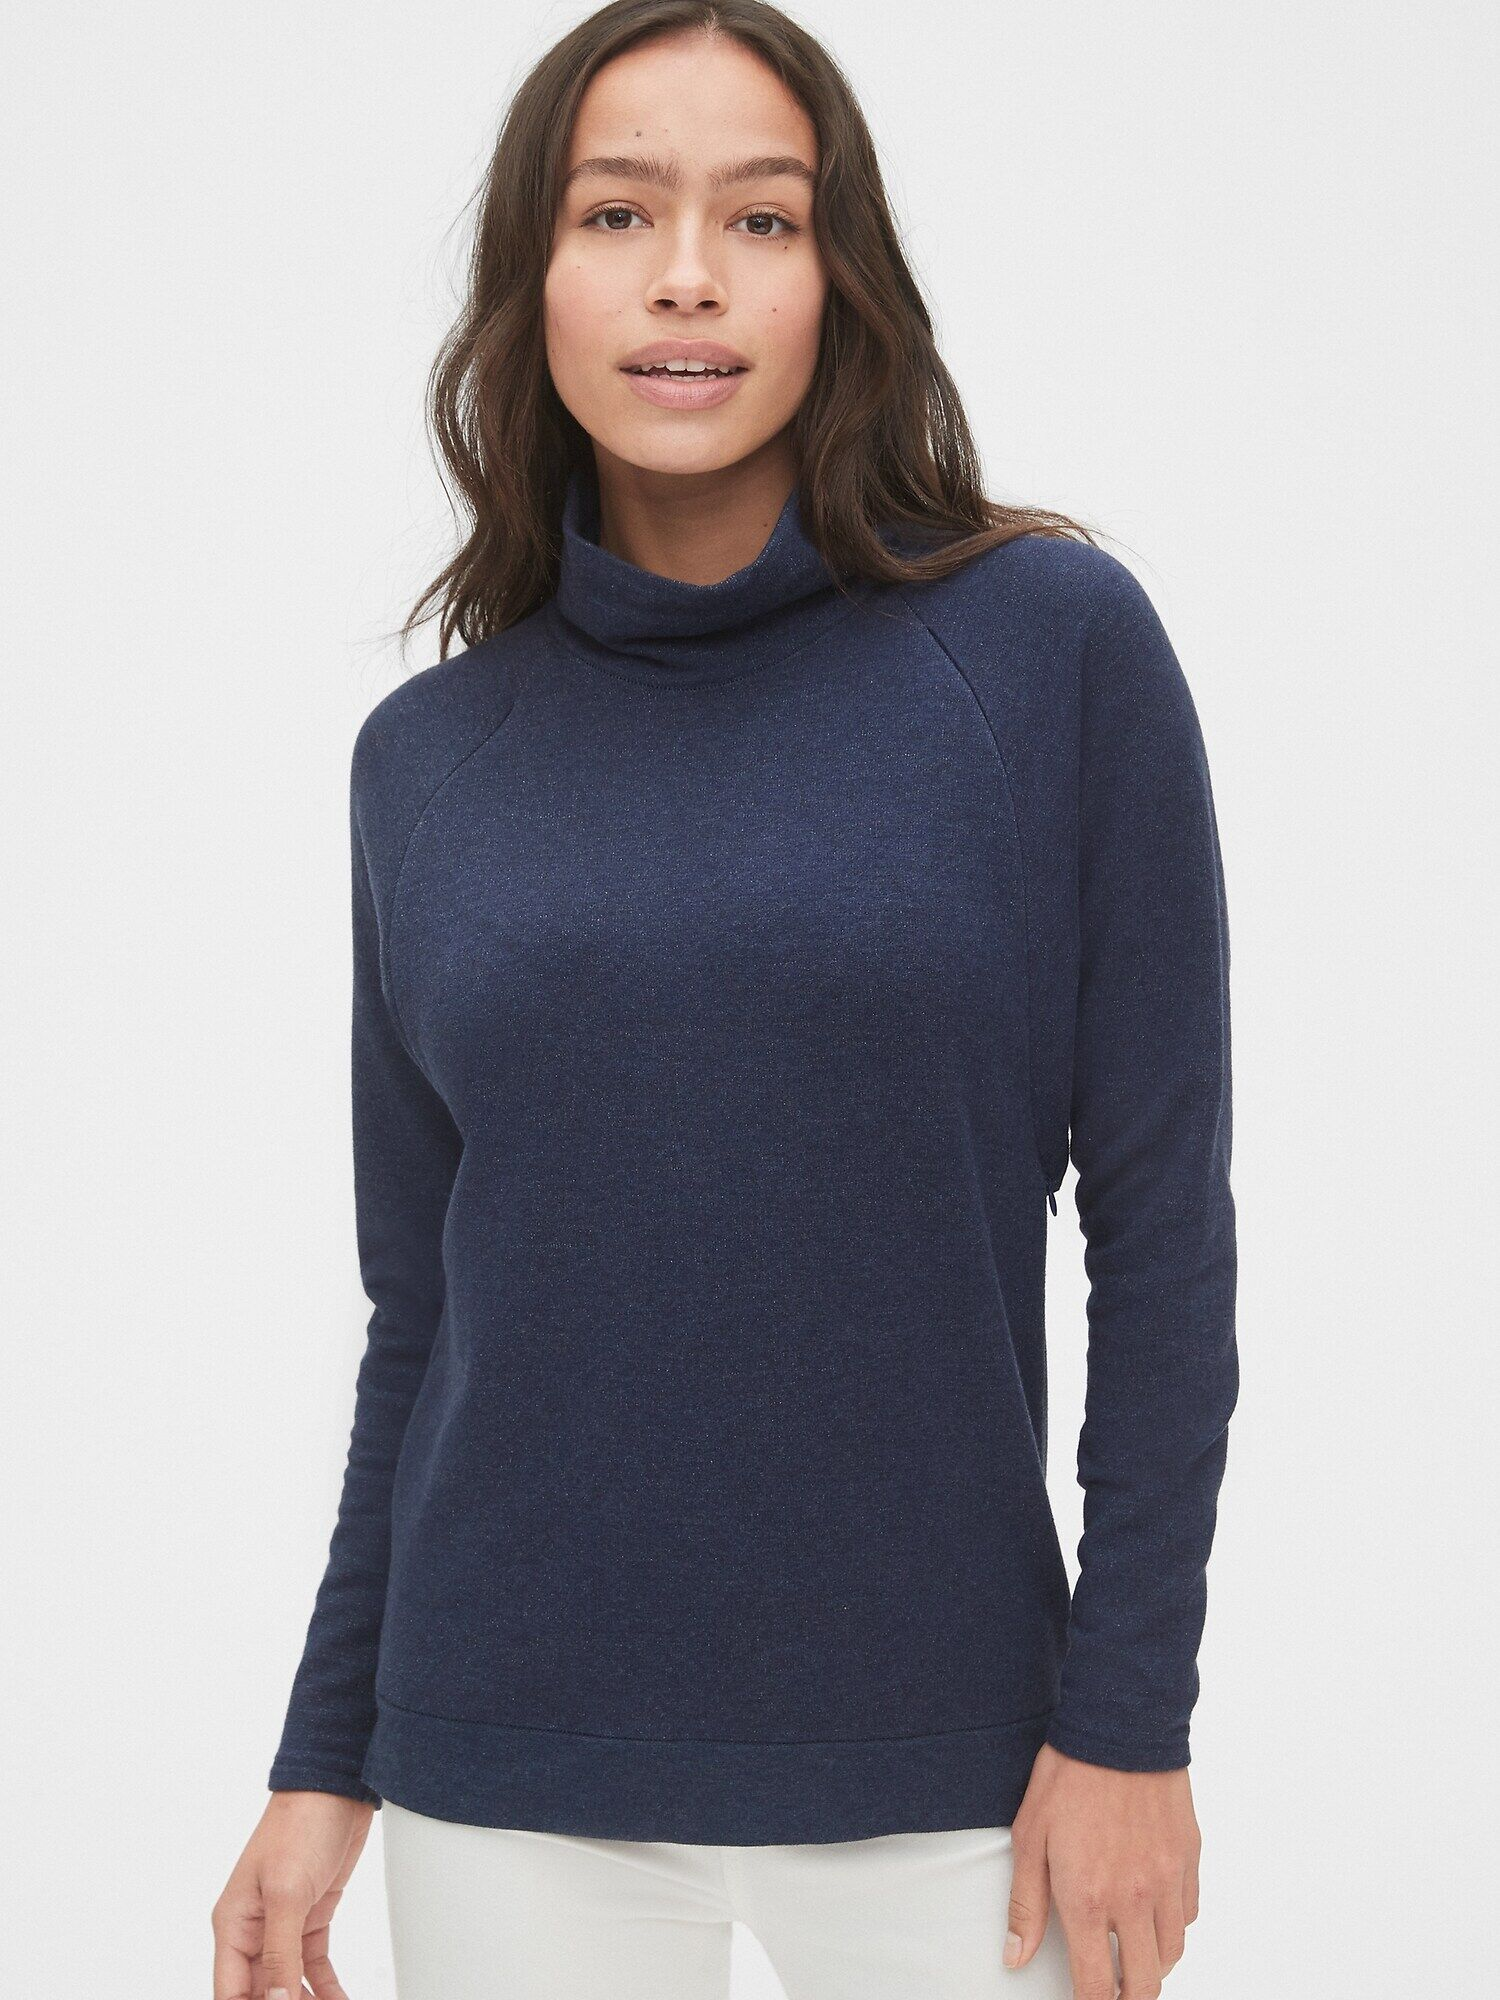 gap mock neck sweater